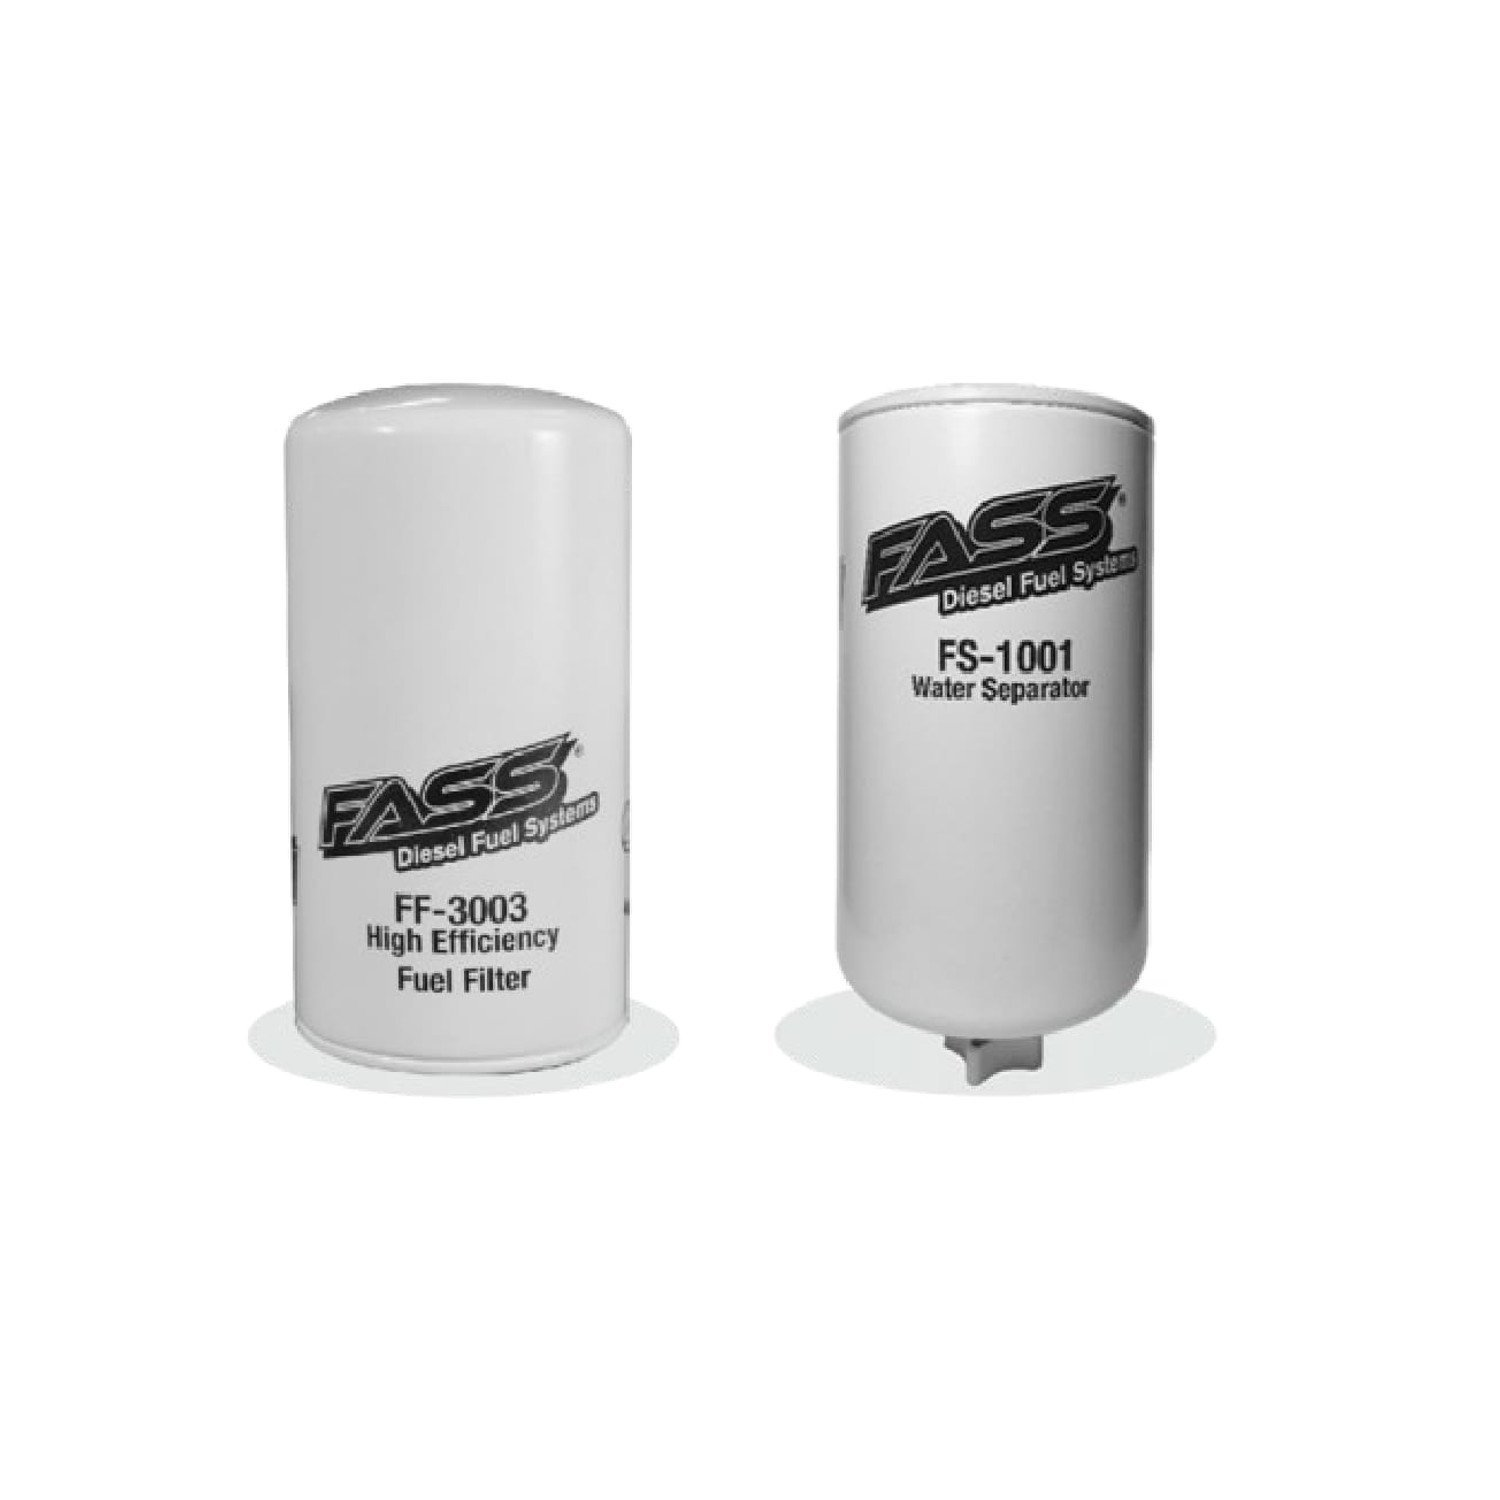 Fass Titanium Series Fuel Filter And Water Separator Rv Combo With Ff 3003 Fs 1001 For Pump Automotive